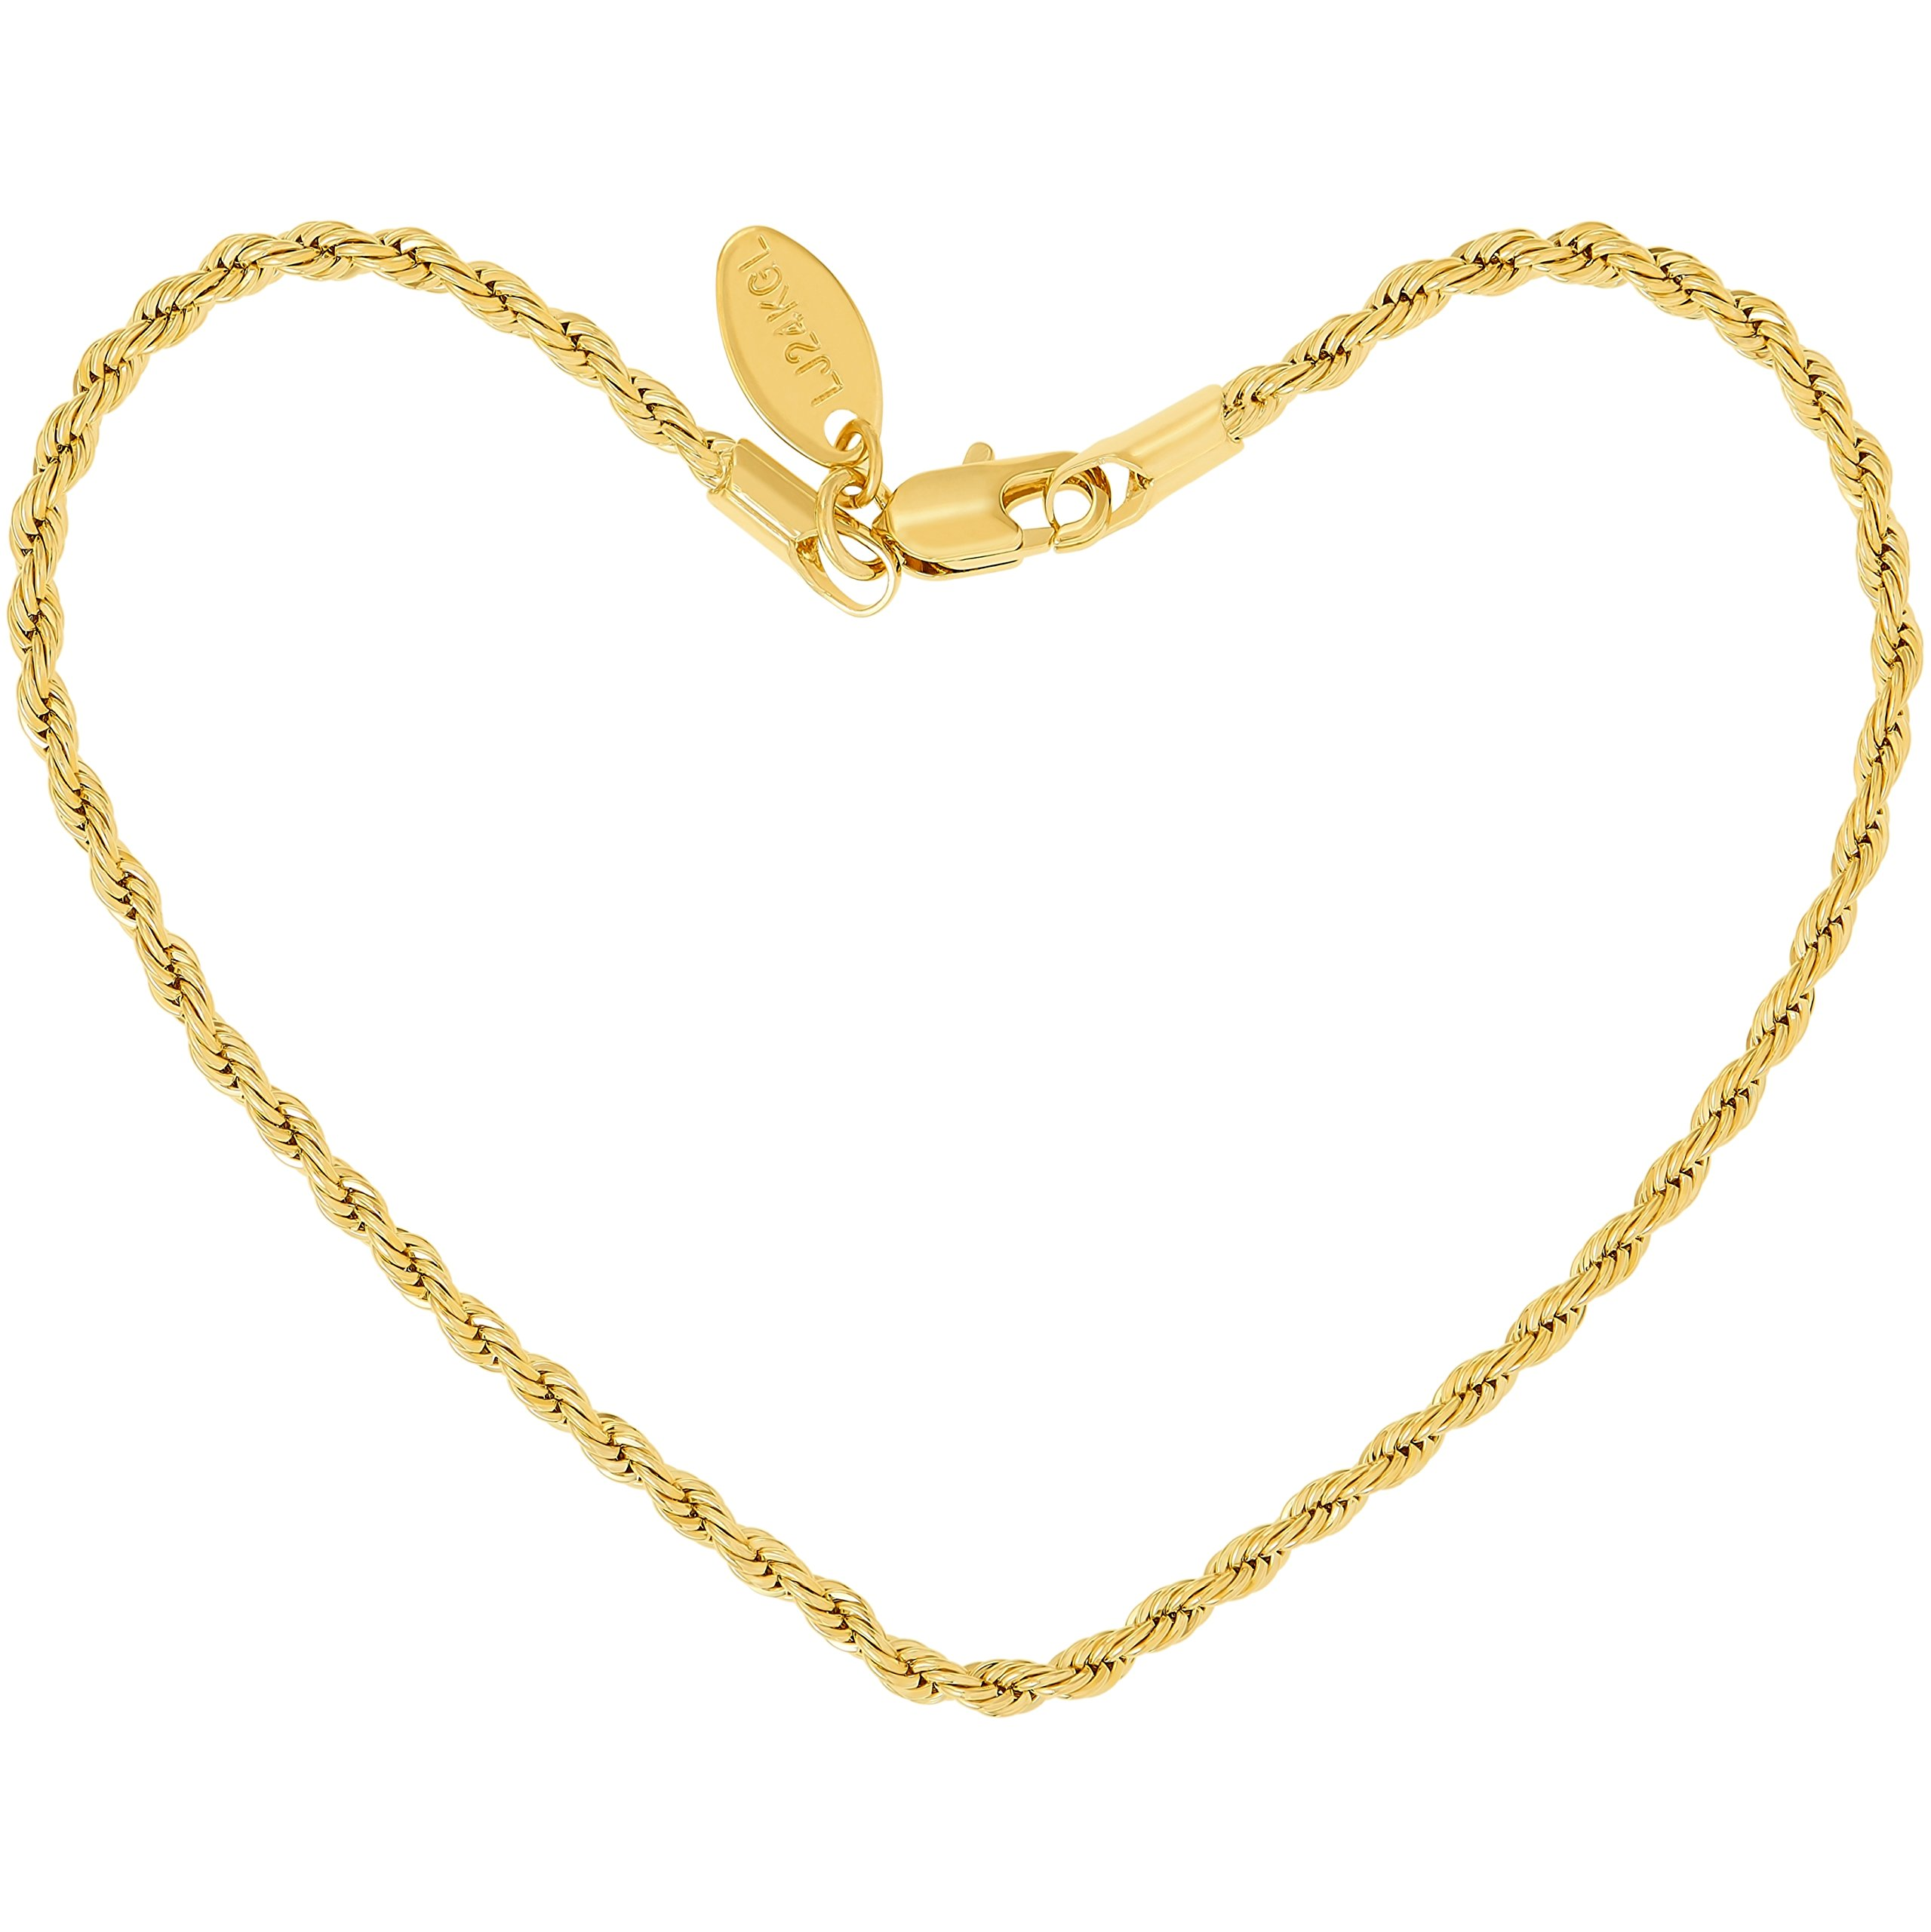 Lifetime Jewelry Anklets for Women Men and Teen Girls - 24K Gold Plated 2mm Rope Chain - Ankle Bracelet to Wear at Beach or Party - Cute Surfer Anklet (Yellow-Gold-Plated-Base, 10.0) by Lifetime Jewelry